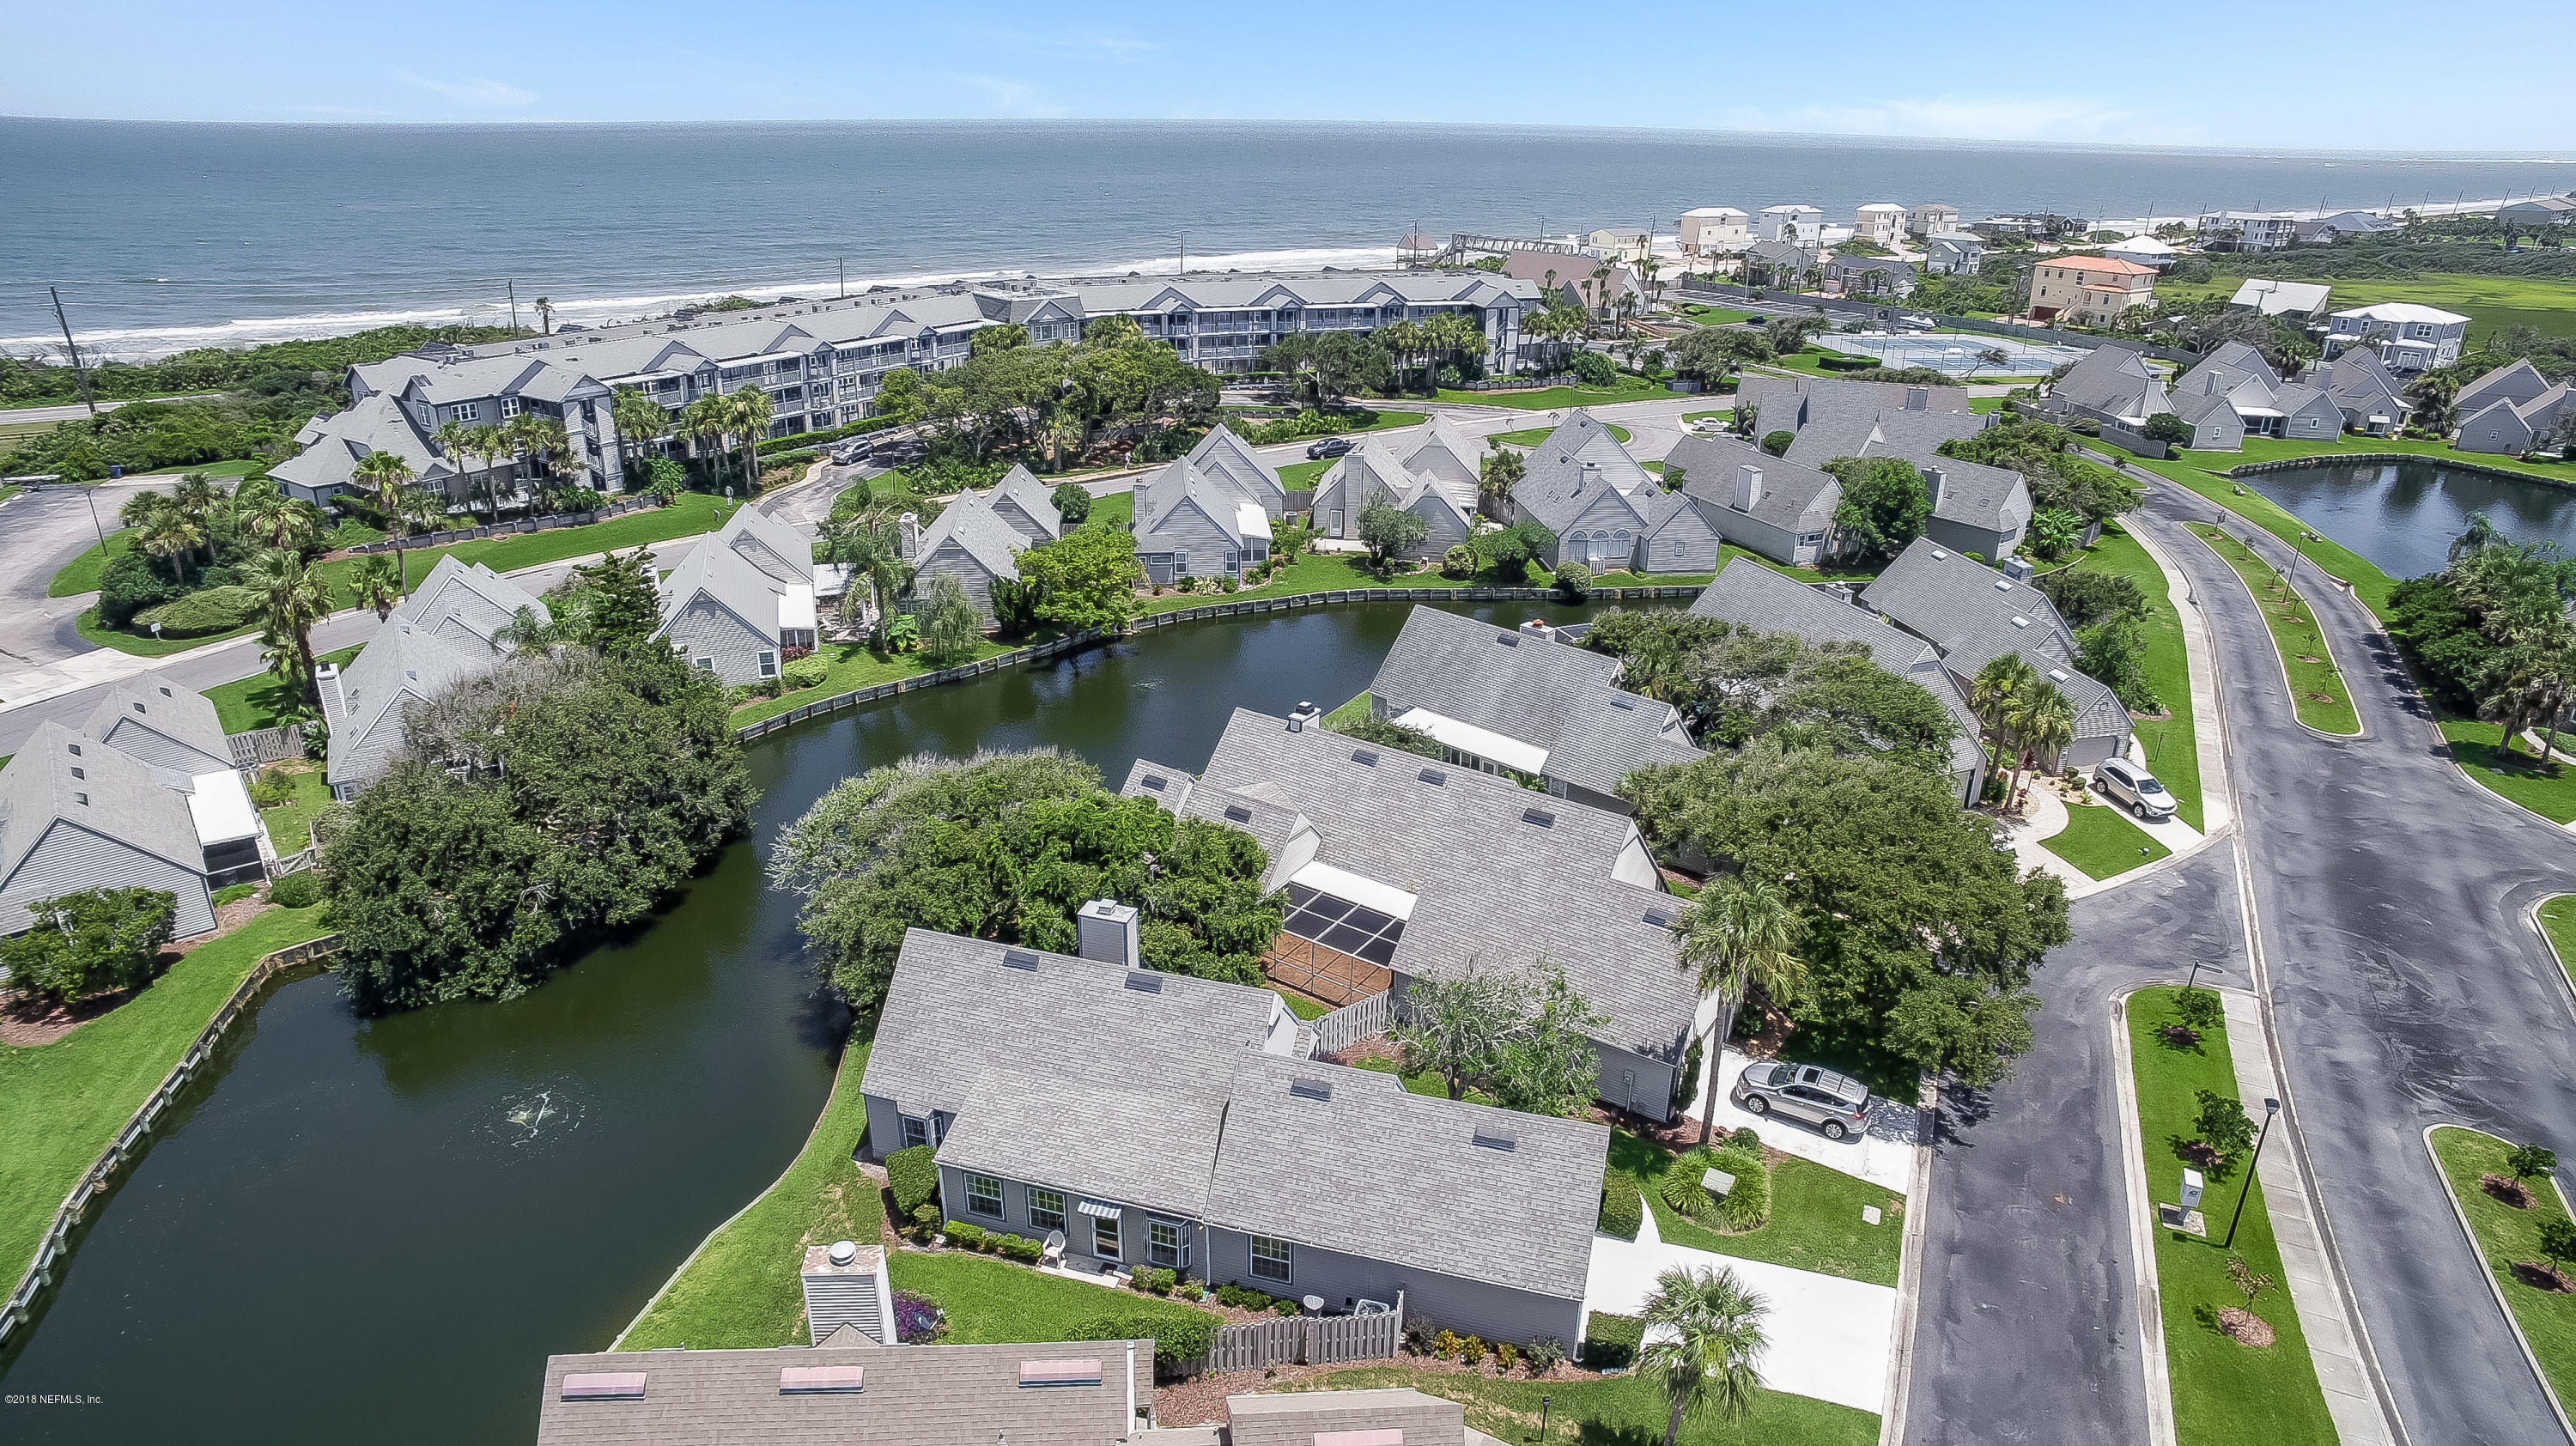 108 LAKE, ST AUGUSTINE, FLORIDA 32084, 2 Bedrooms Bedrooms, ,2 BathroomsBathrooms,Residential - single family,For sale,LAKE,950353